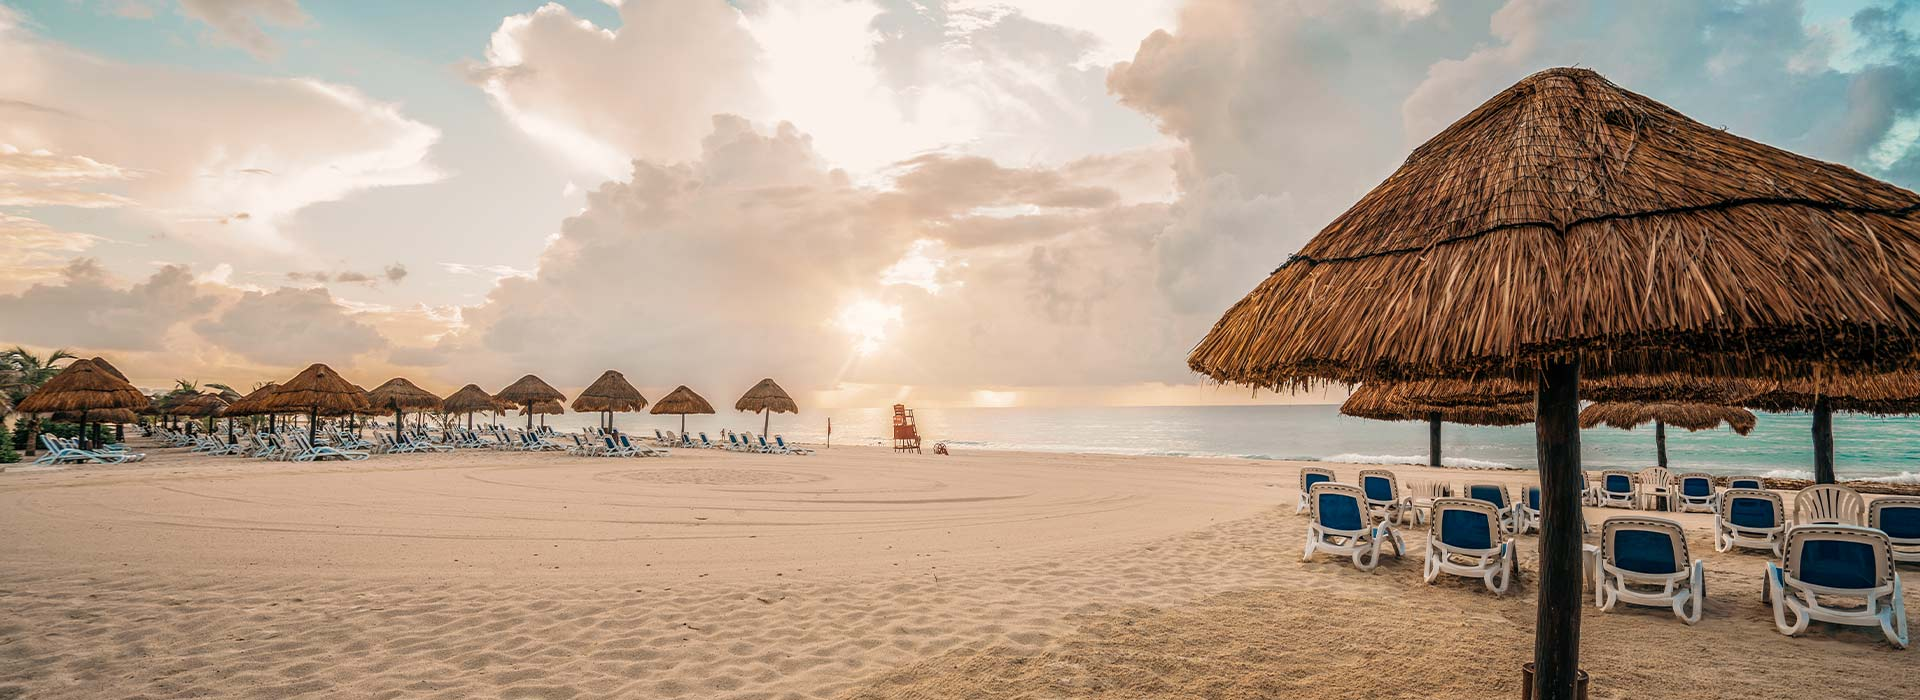 El resort de playa en Cancún con incomparables vistas del Mar Caribe para unas vacaciones familiares